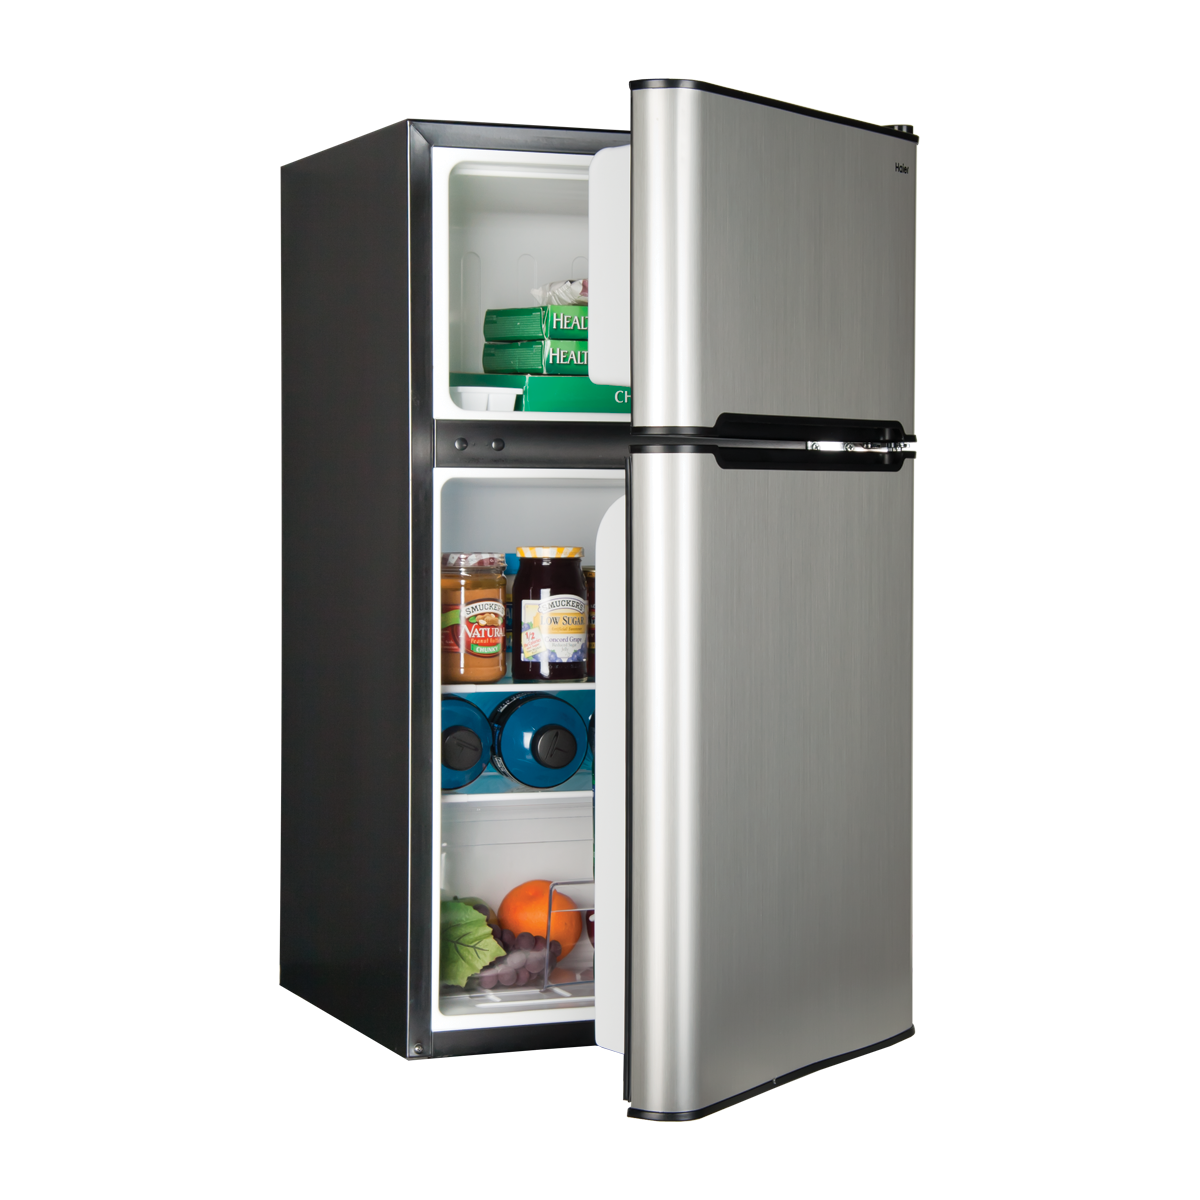 Transparent fridge file. Refrigerator png image purepng